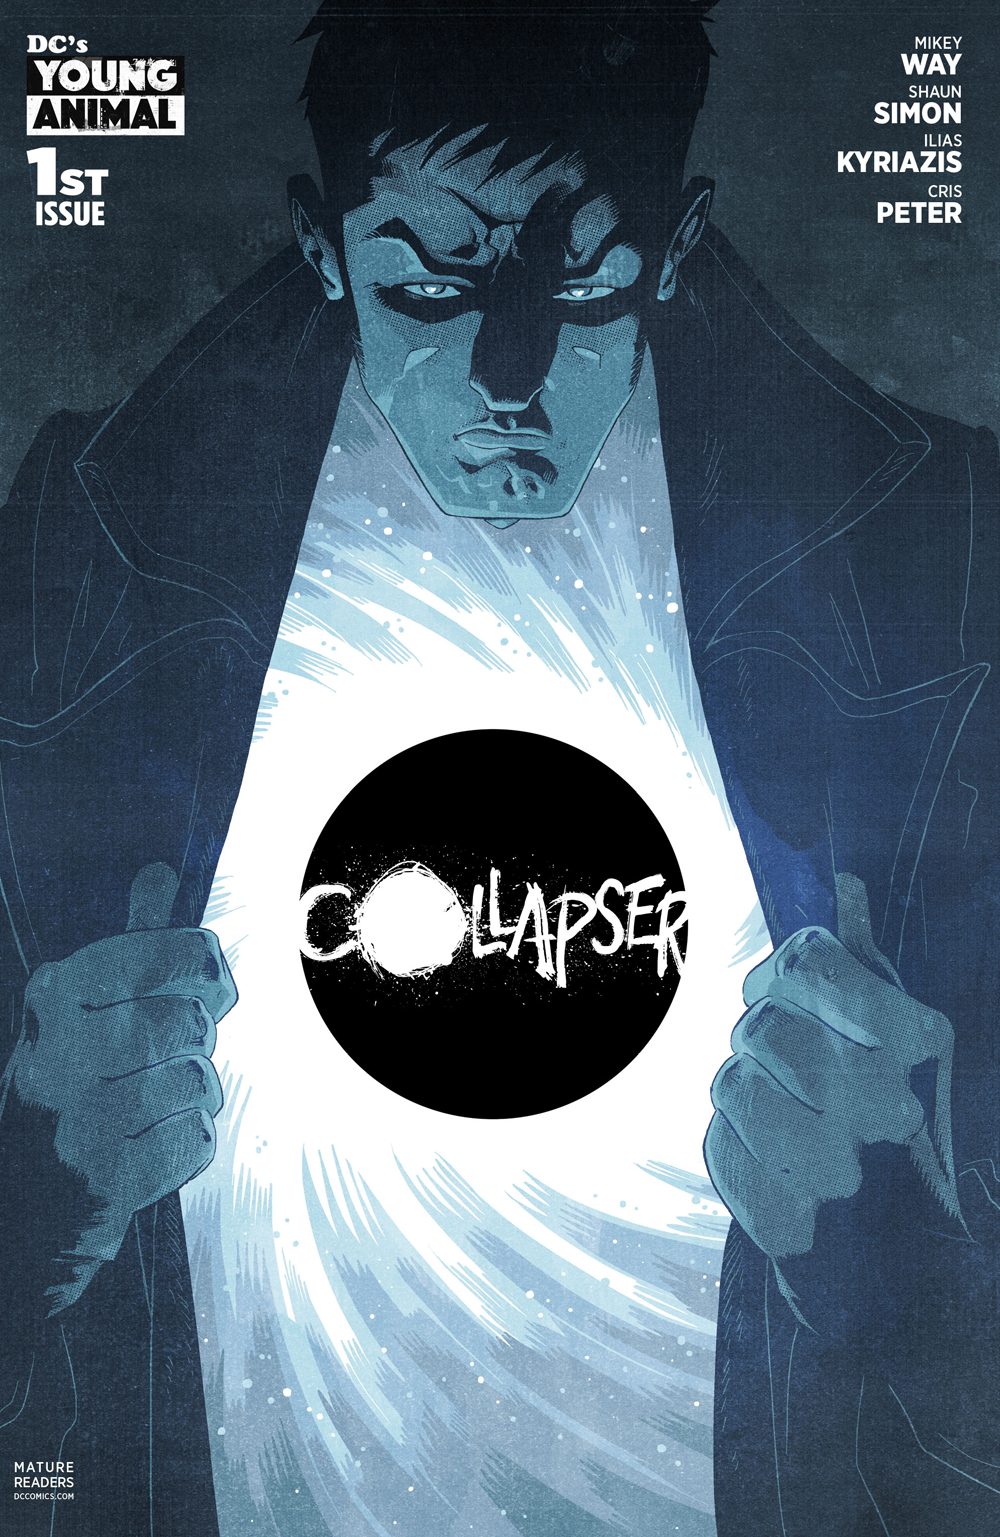 COLLAPSER #1 (OF 6) (MR)